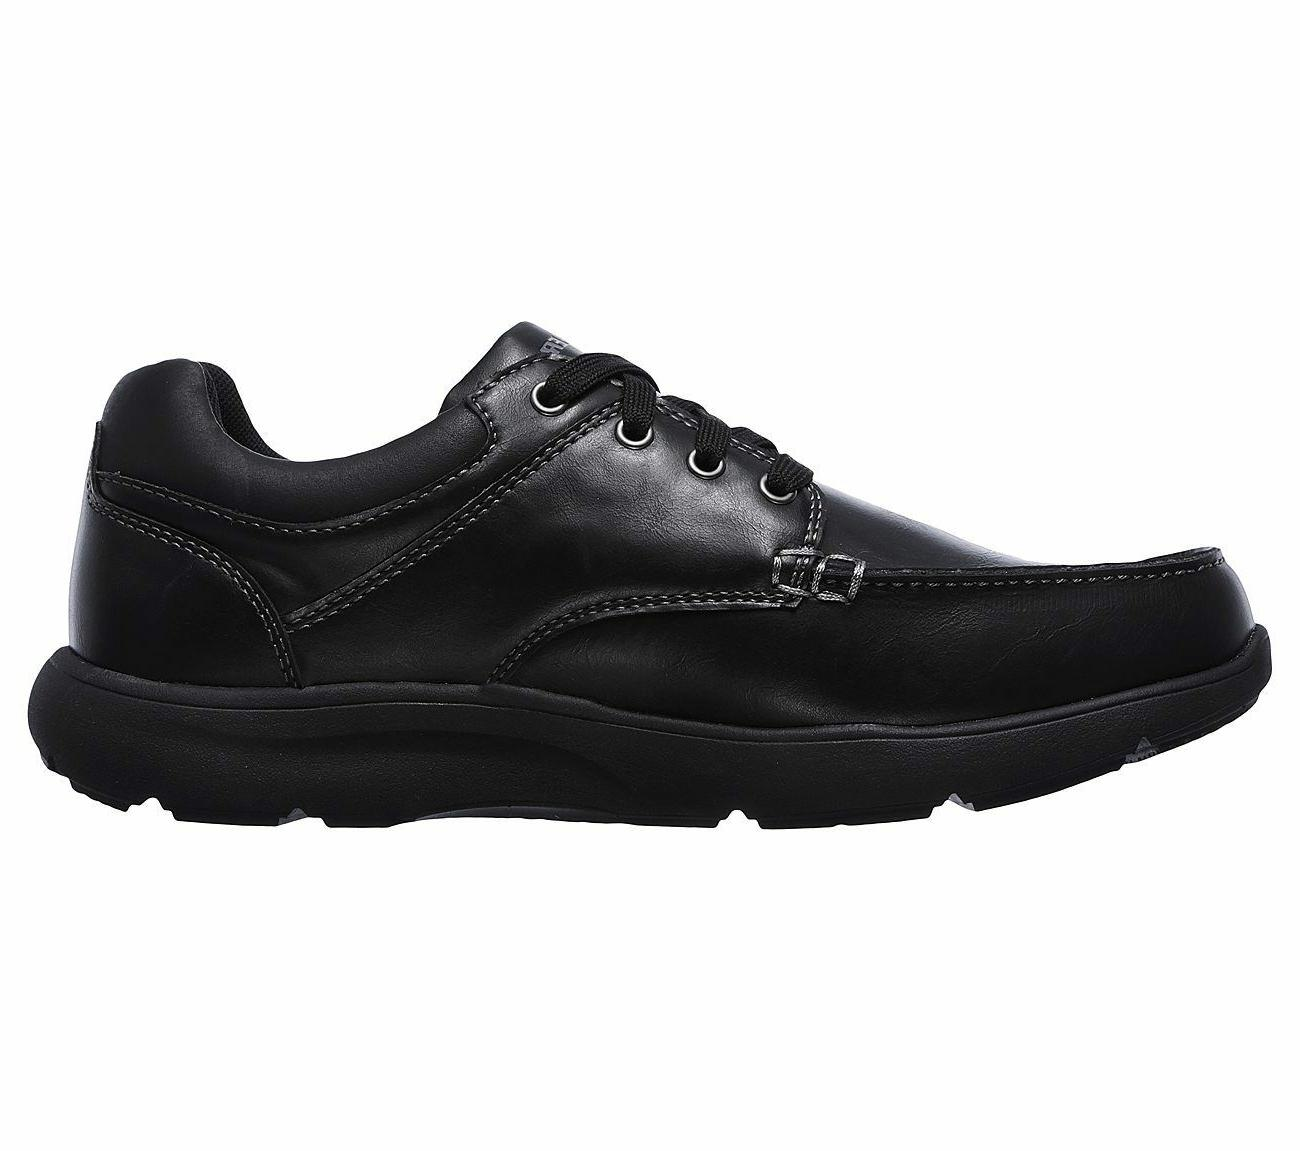 65325 Black Skechers Men Foam Comfort Dress Oxford